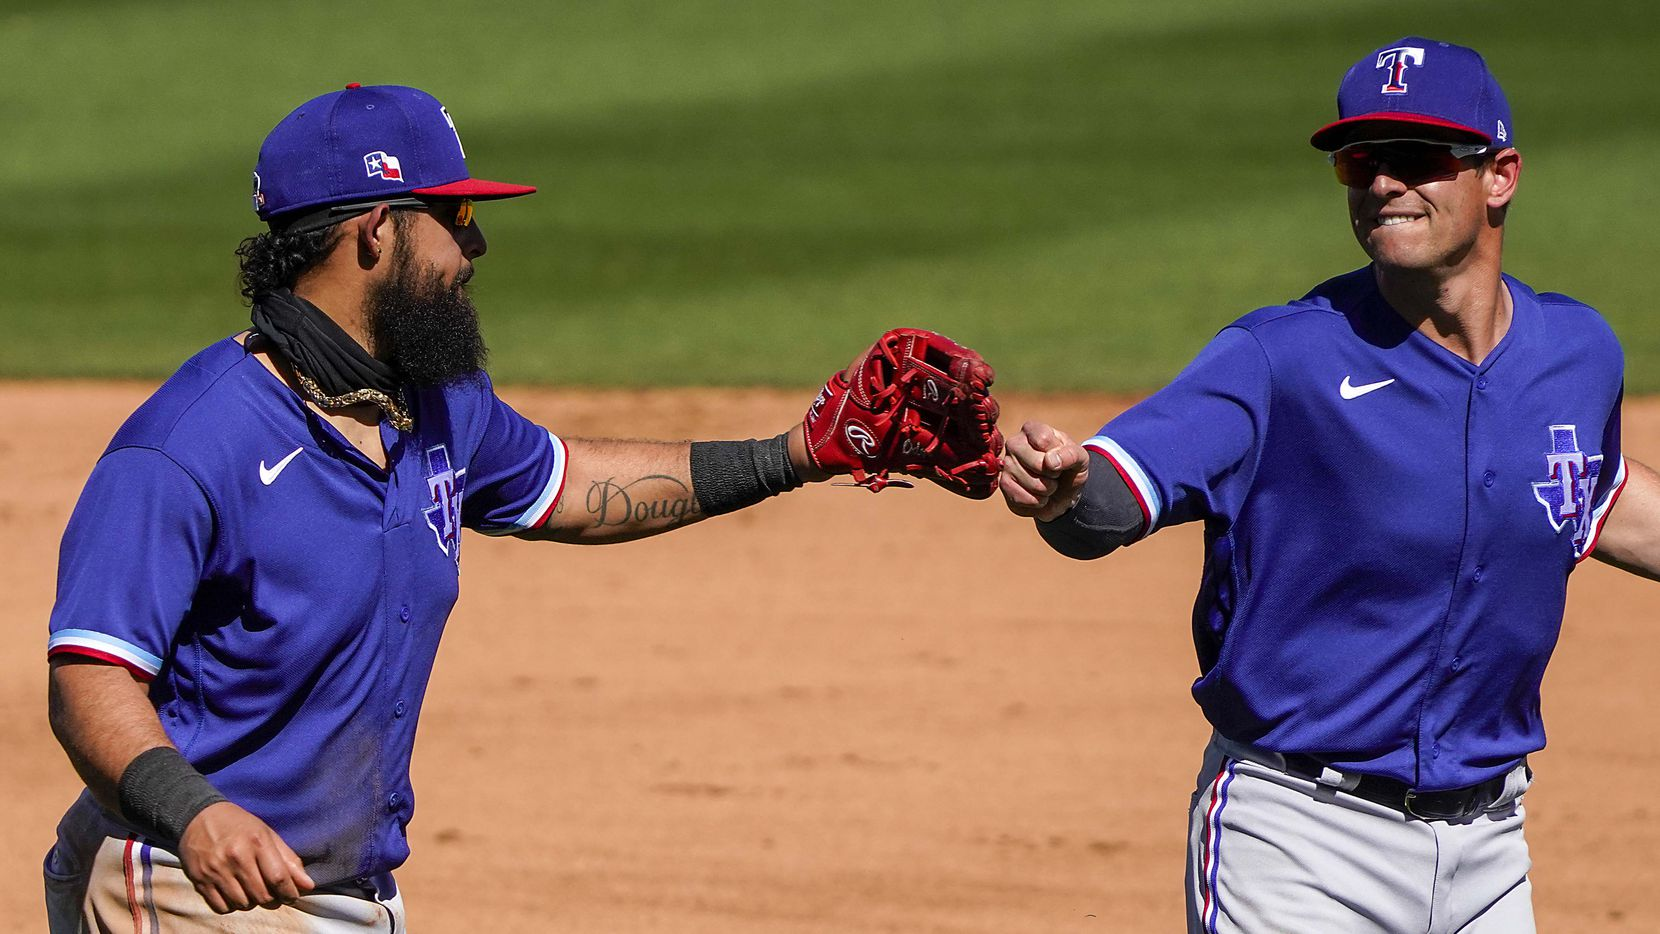 Texas Rangers third baseman Rougned Odor (left) celebrates with second baseman Nick Solak after Odor made a diving play during the fourth inning of a spring training game against the Arizona Diamondbacks at Salt River Fields at Talking Stick on Saturday, March 6, 2021, in Scottsdale, Ariz.